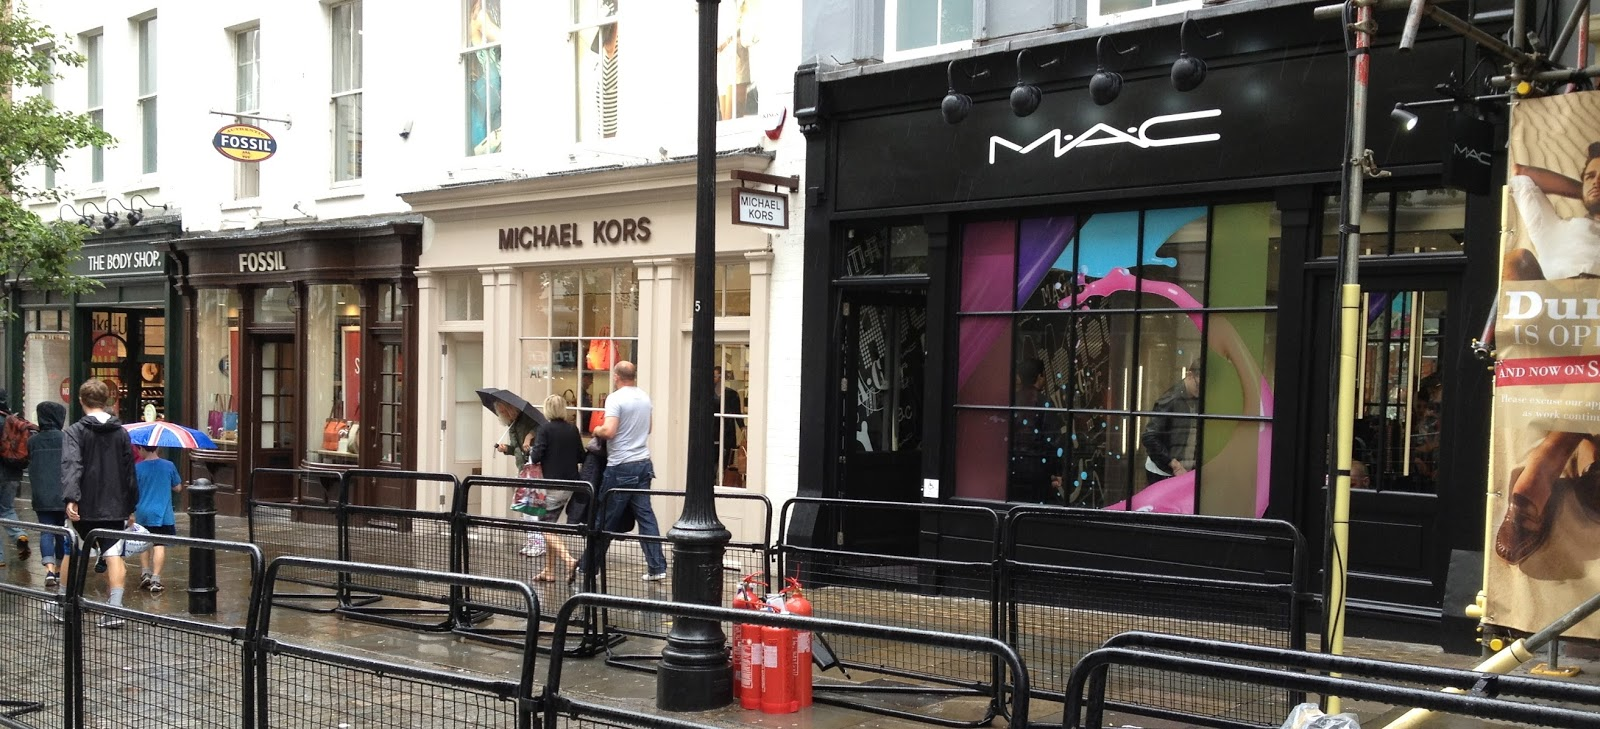 I do love magazines mac cosmetics new store opened today covent garden - Covent garden magasin ...